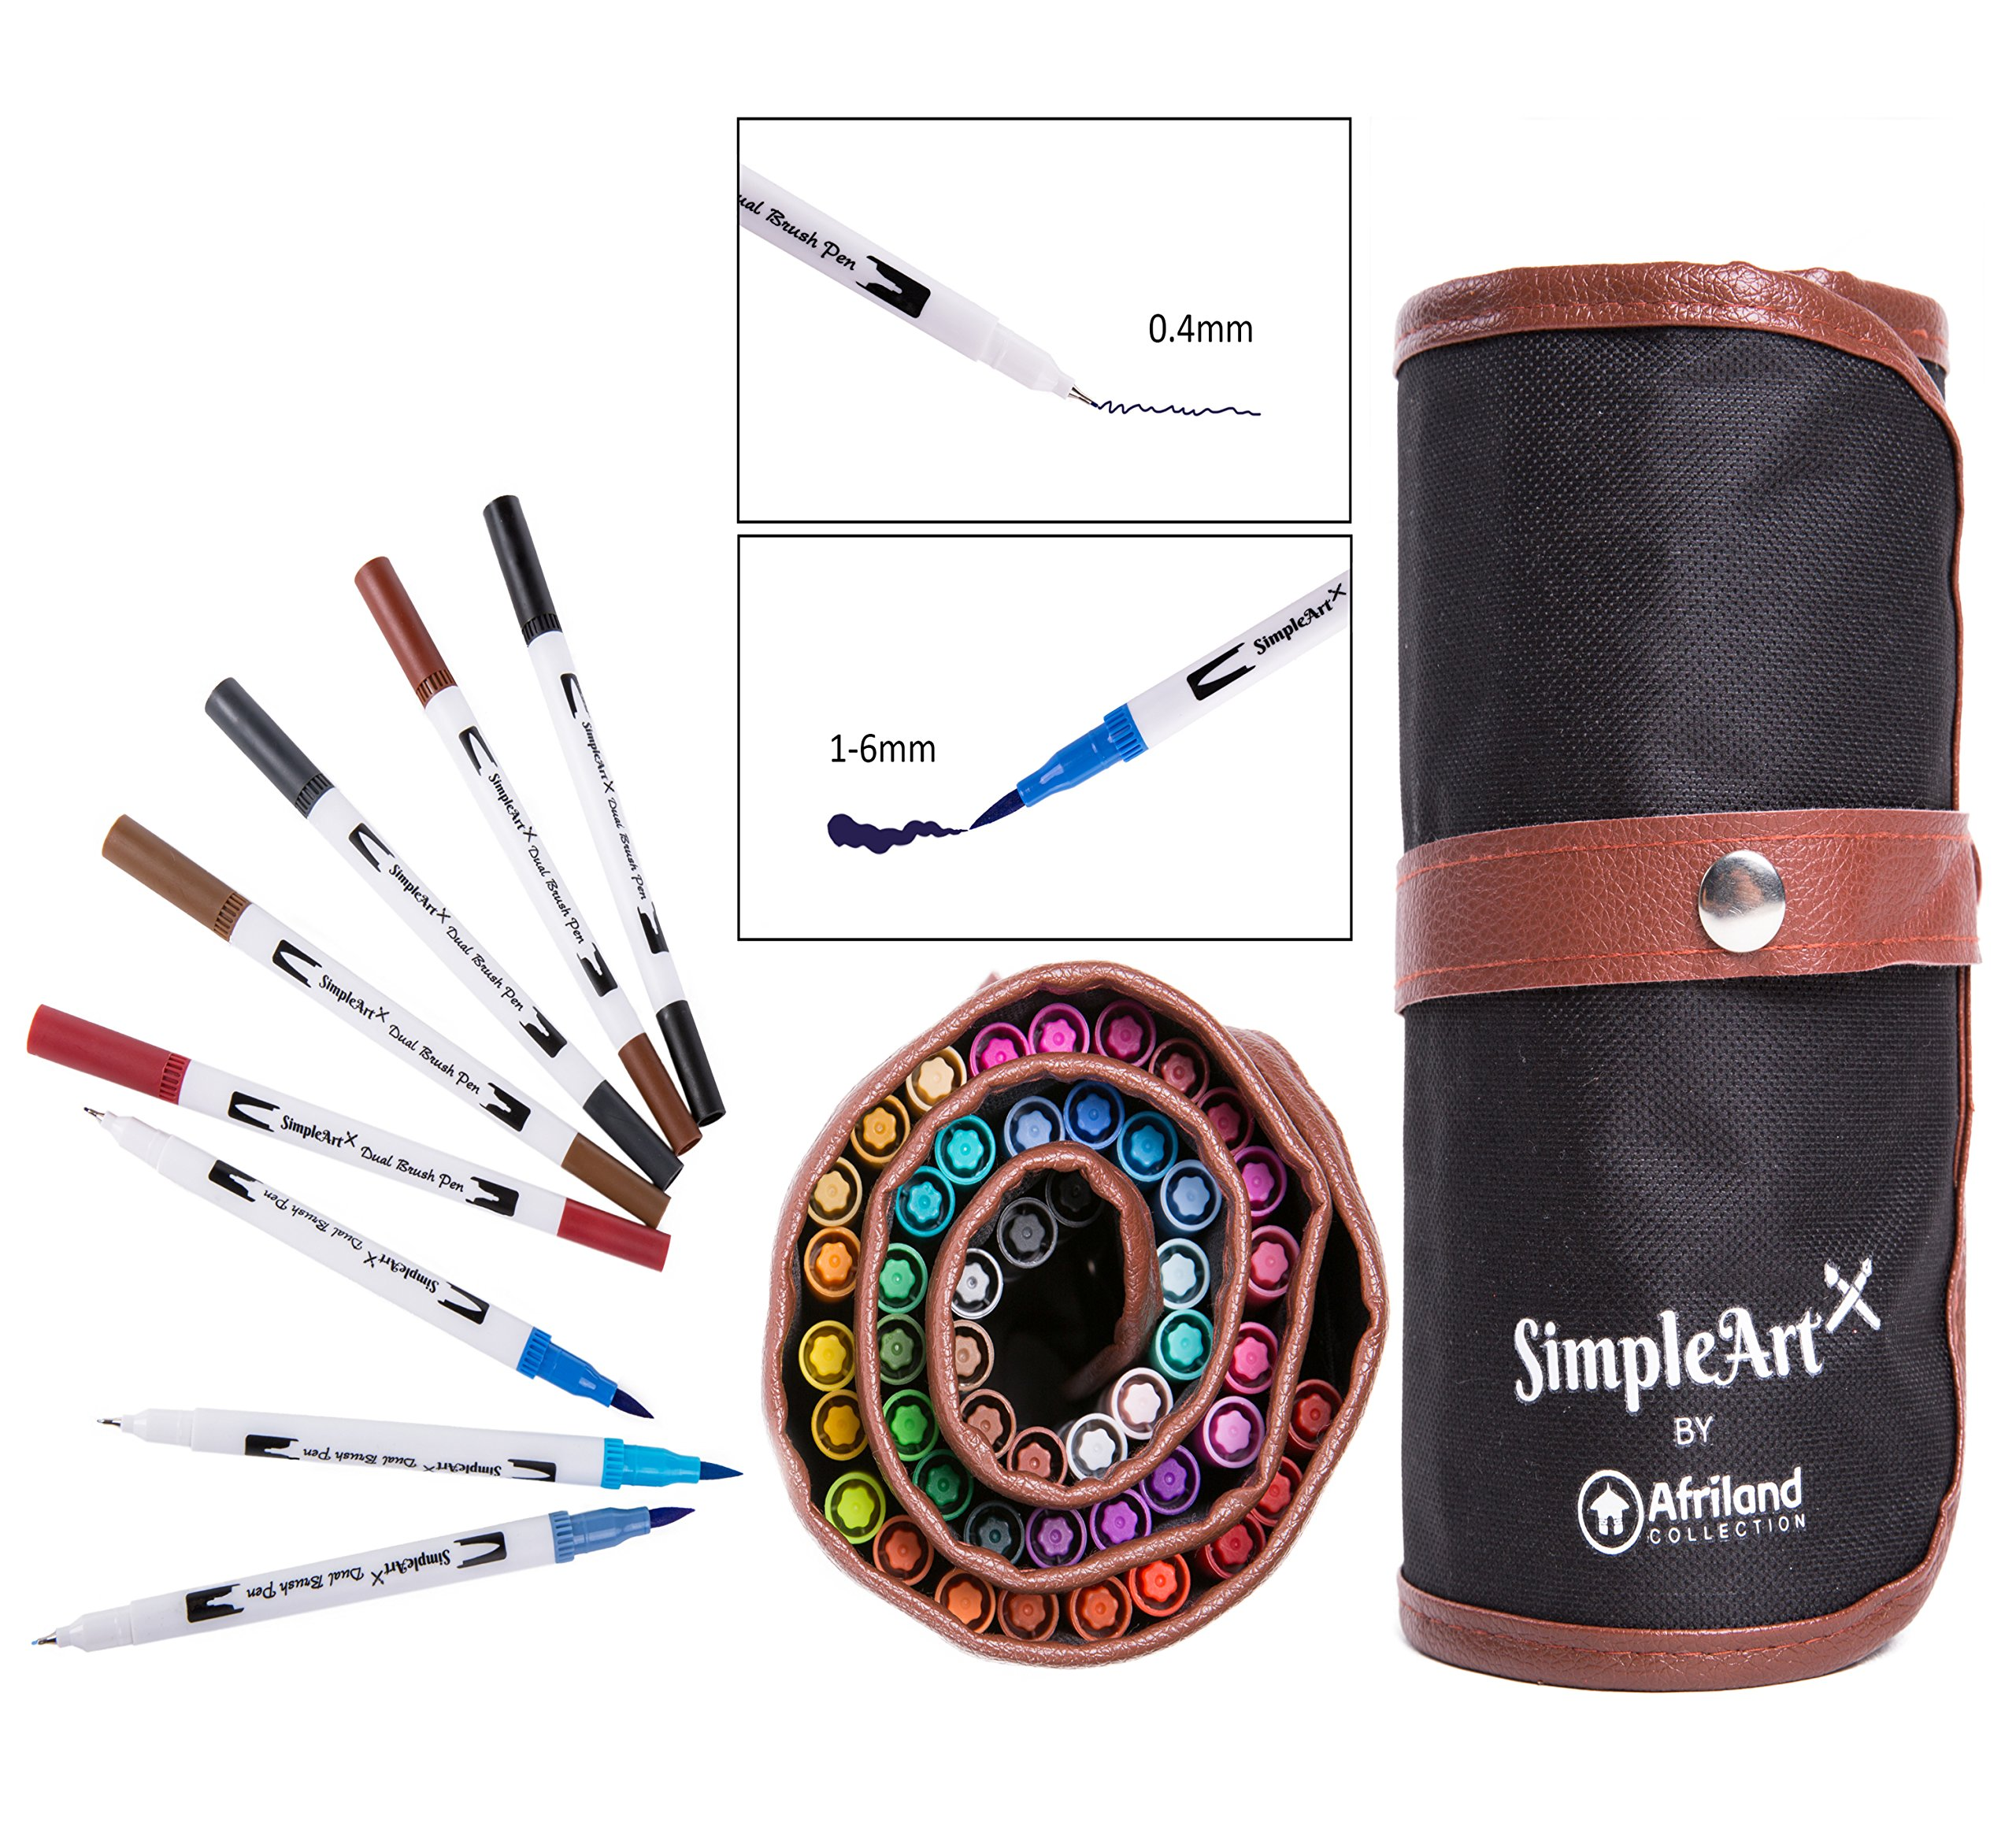 SimpleArt Brush Pens and Dual Tip Color Art Markers- Watercolor Fine Point and Fiber Brush Tip Fineliner Pens- Safe Non-toxic Water Based For Kids and Adult Coloring- 48 Unique Colors in Canvas Bag